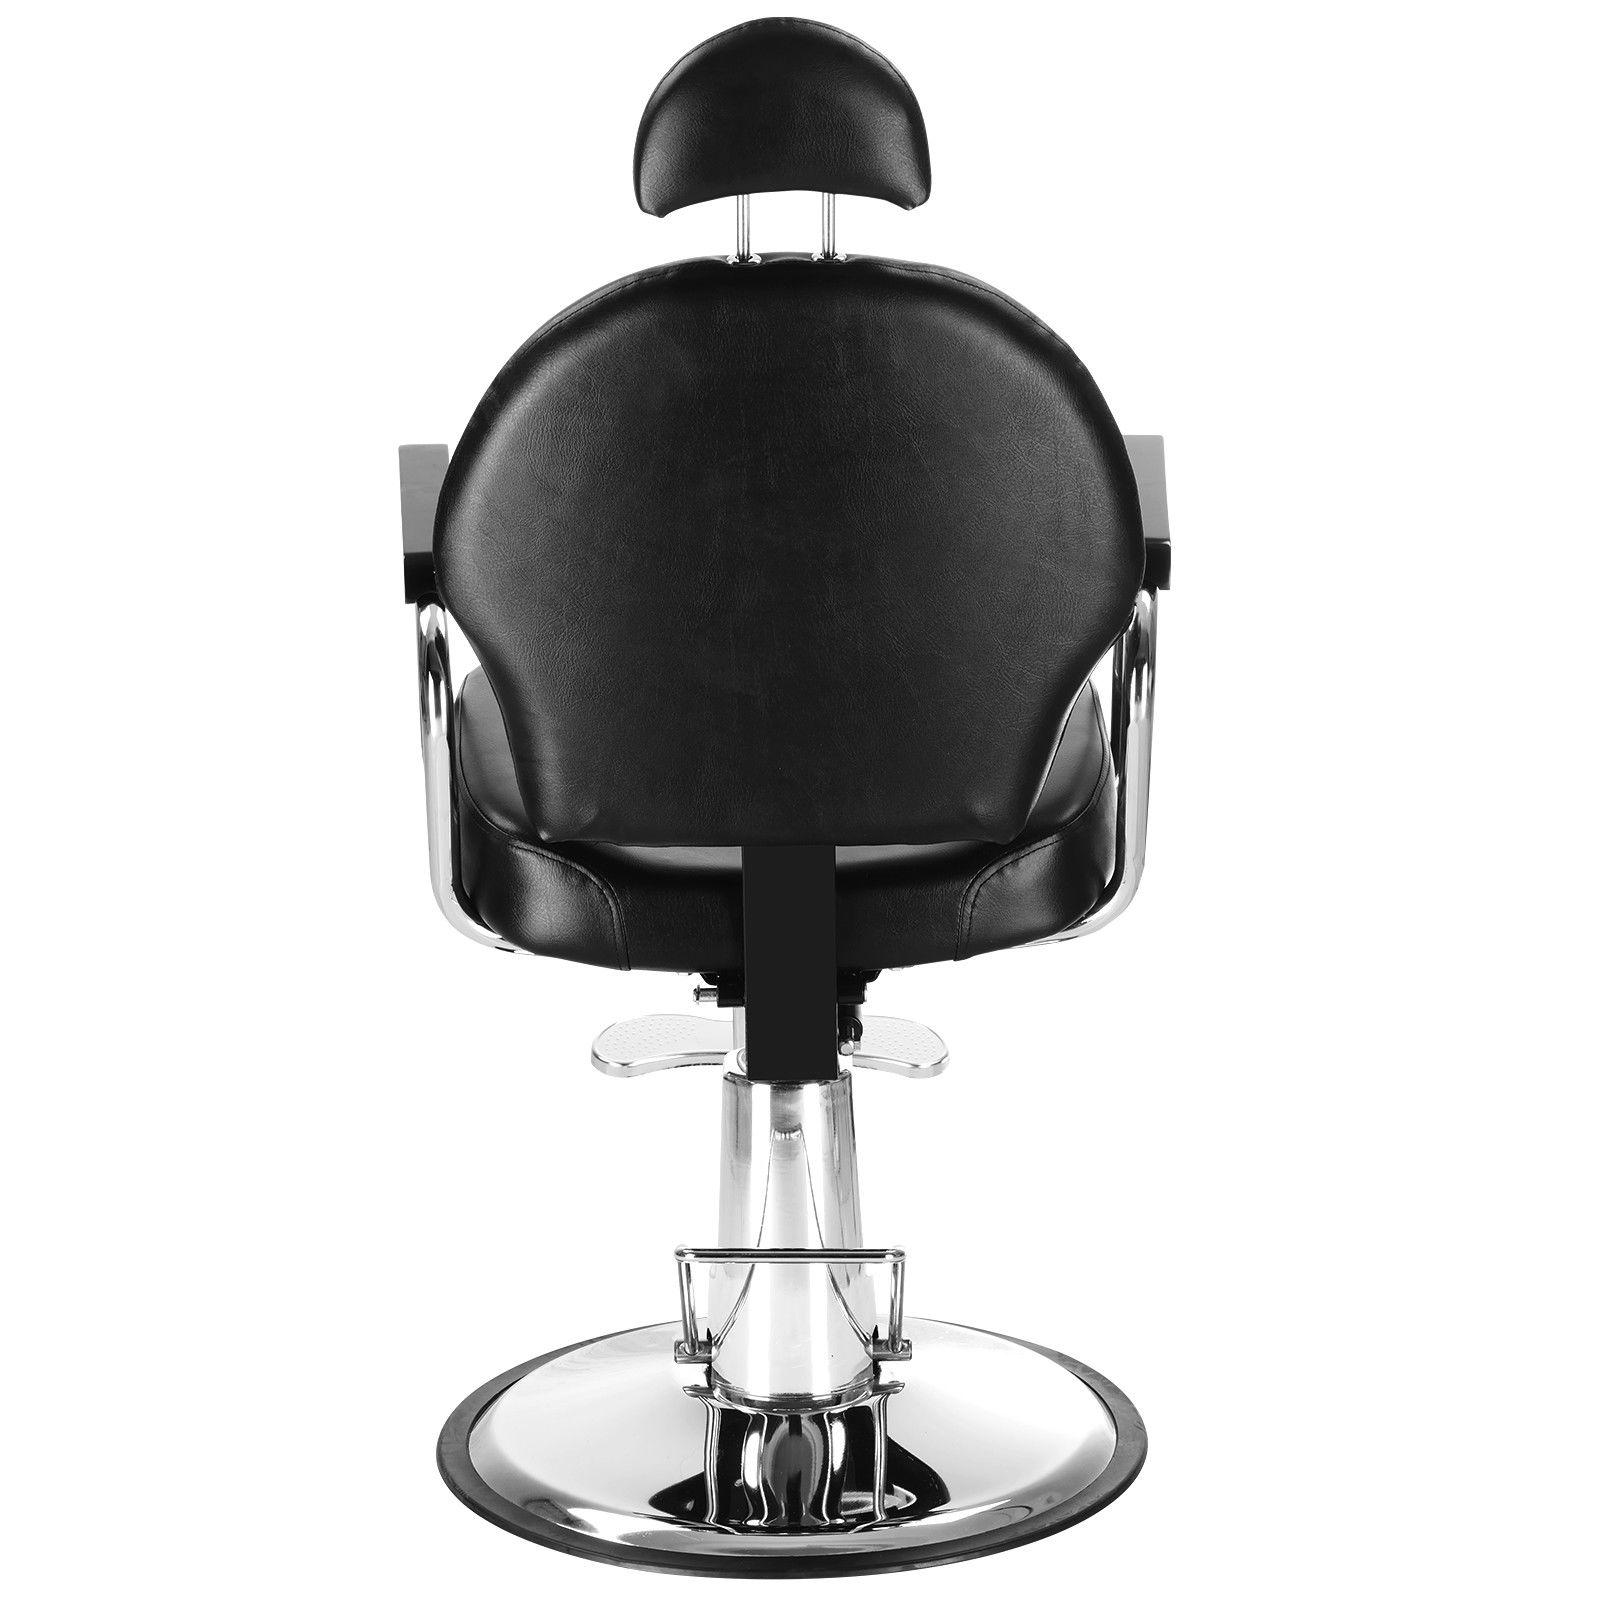 Hydraulic Barber Chair All Purpose Salon Styling Swivel Grooming